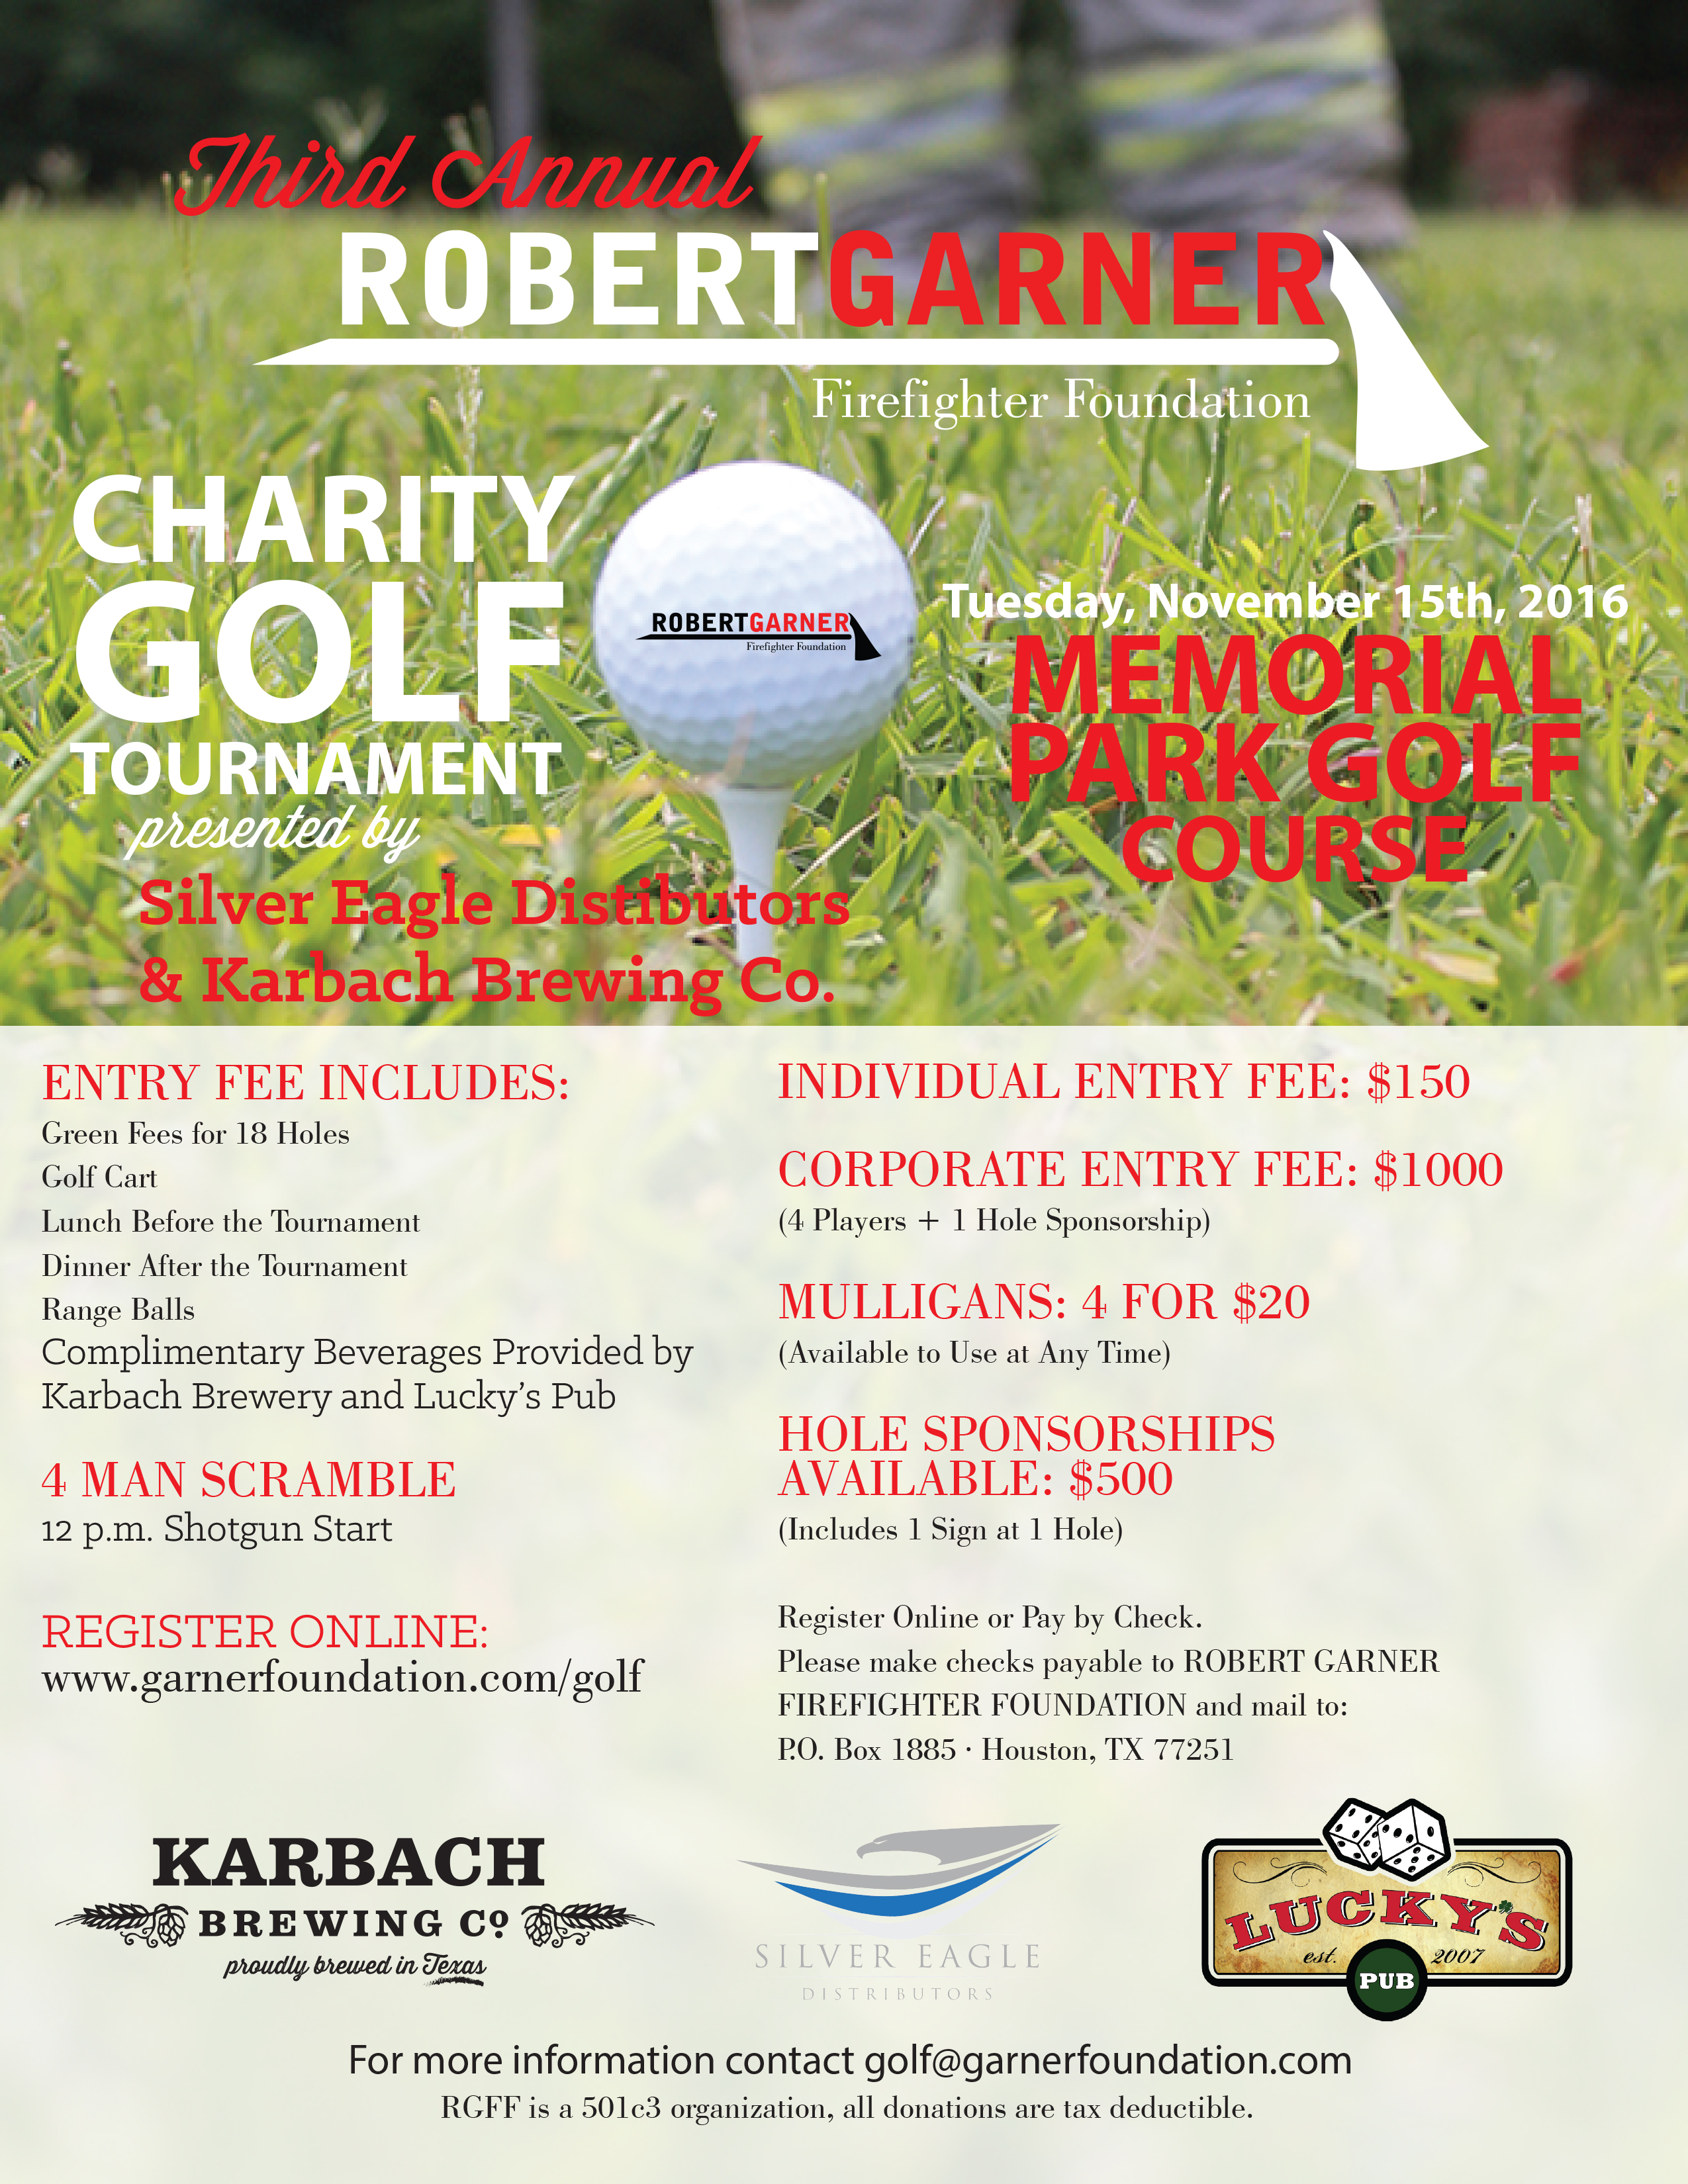 RGFF Charity Golf Tournament 11_15